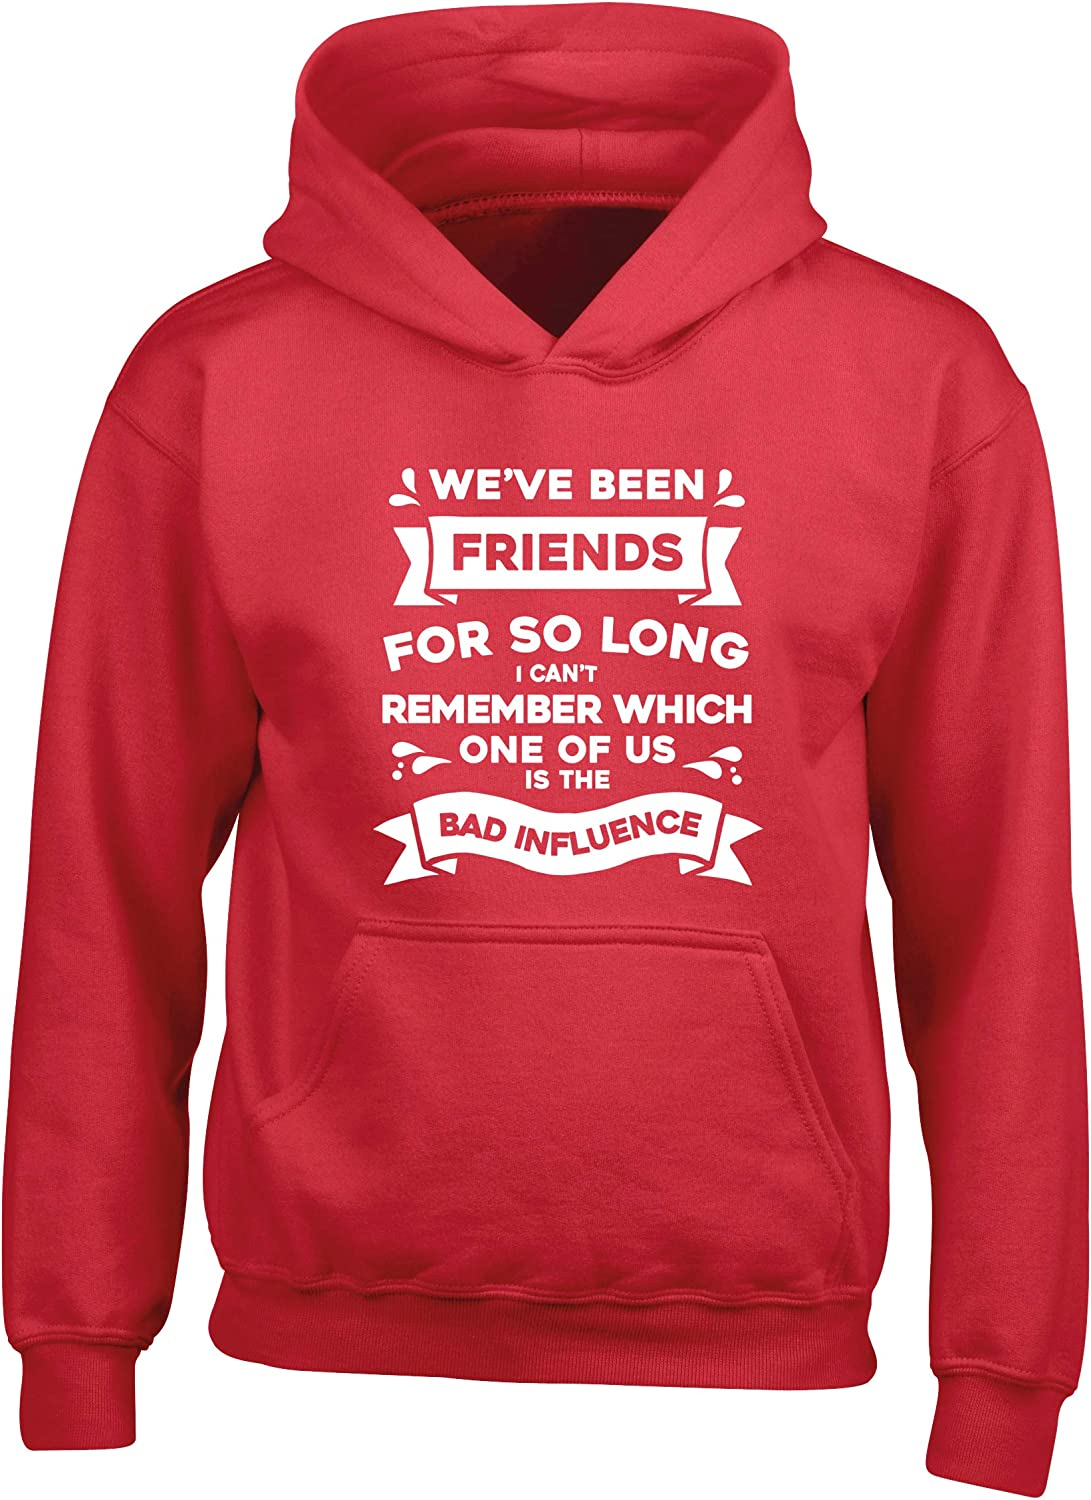 Hippowarehouse Weve Been Friends so Long I Cant Remember which one of us is The Bad Influence Kids Childrens Unisex Hoodie Hooded top